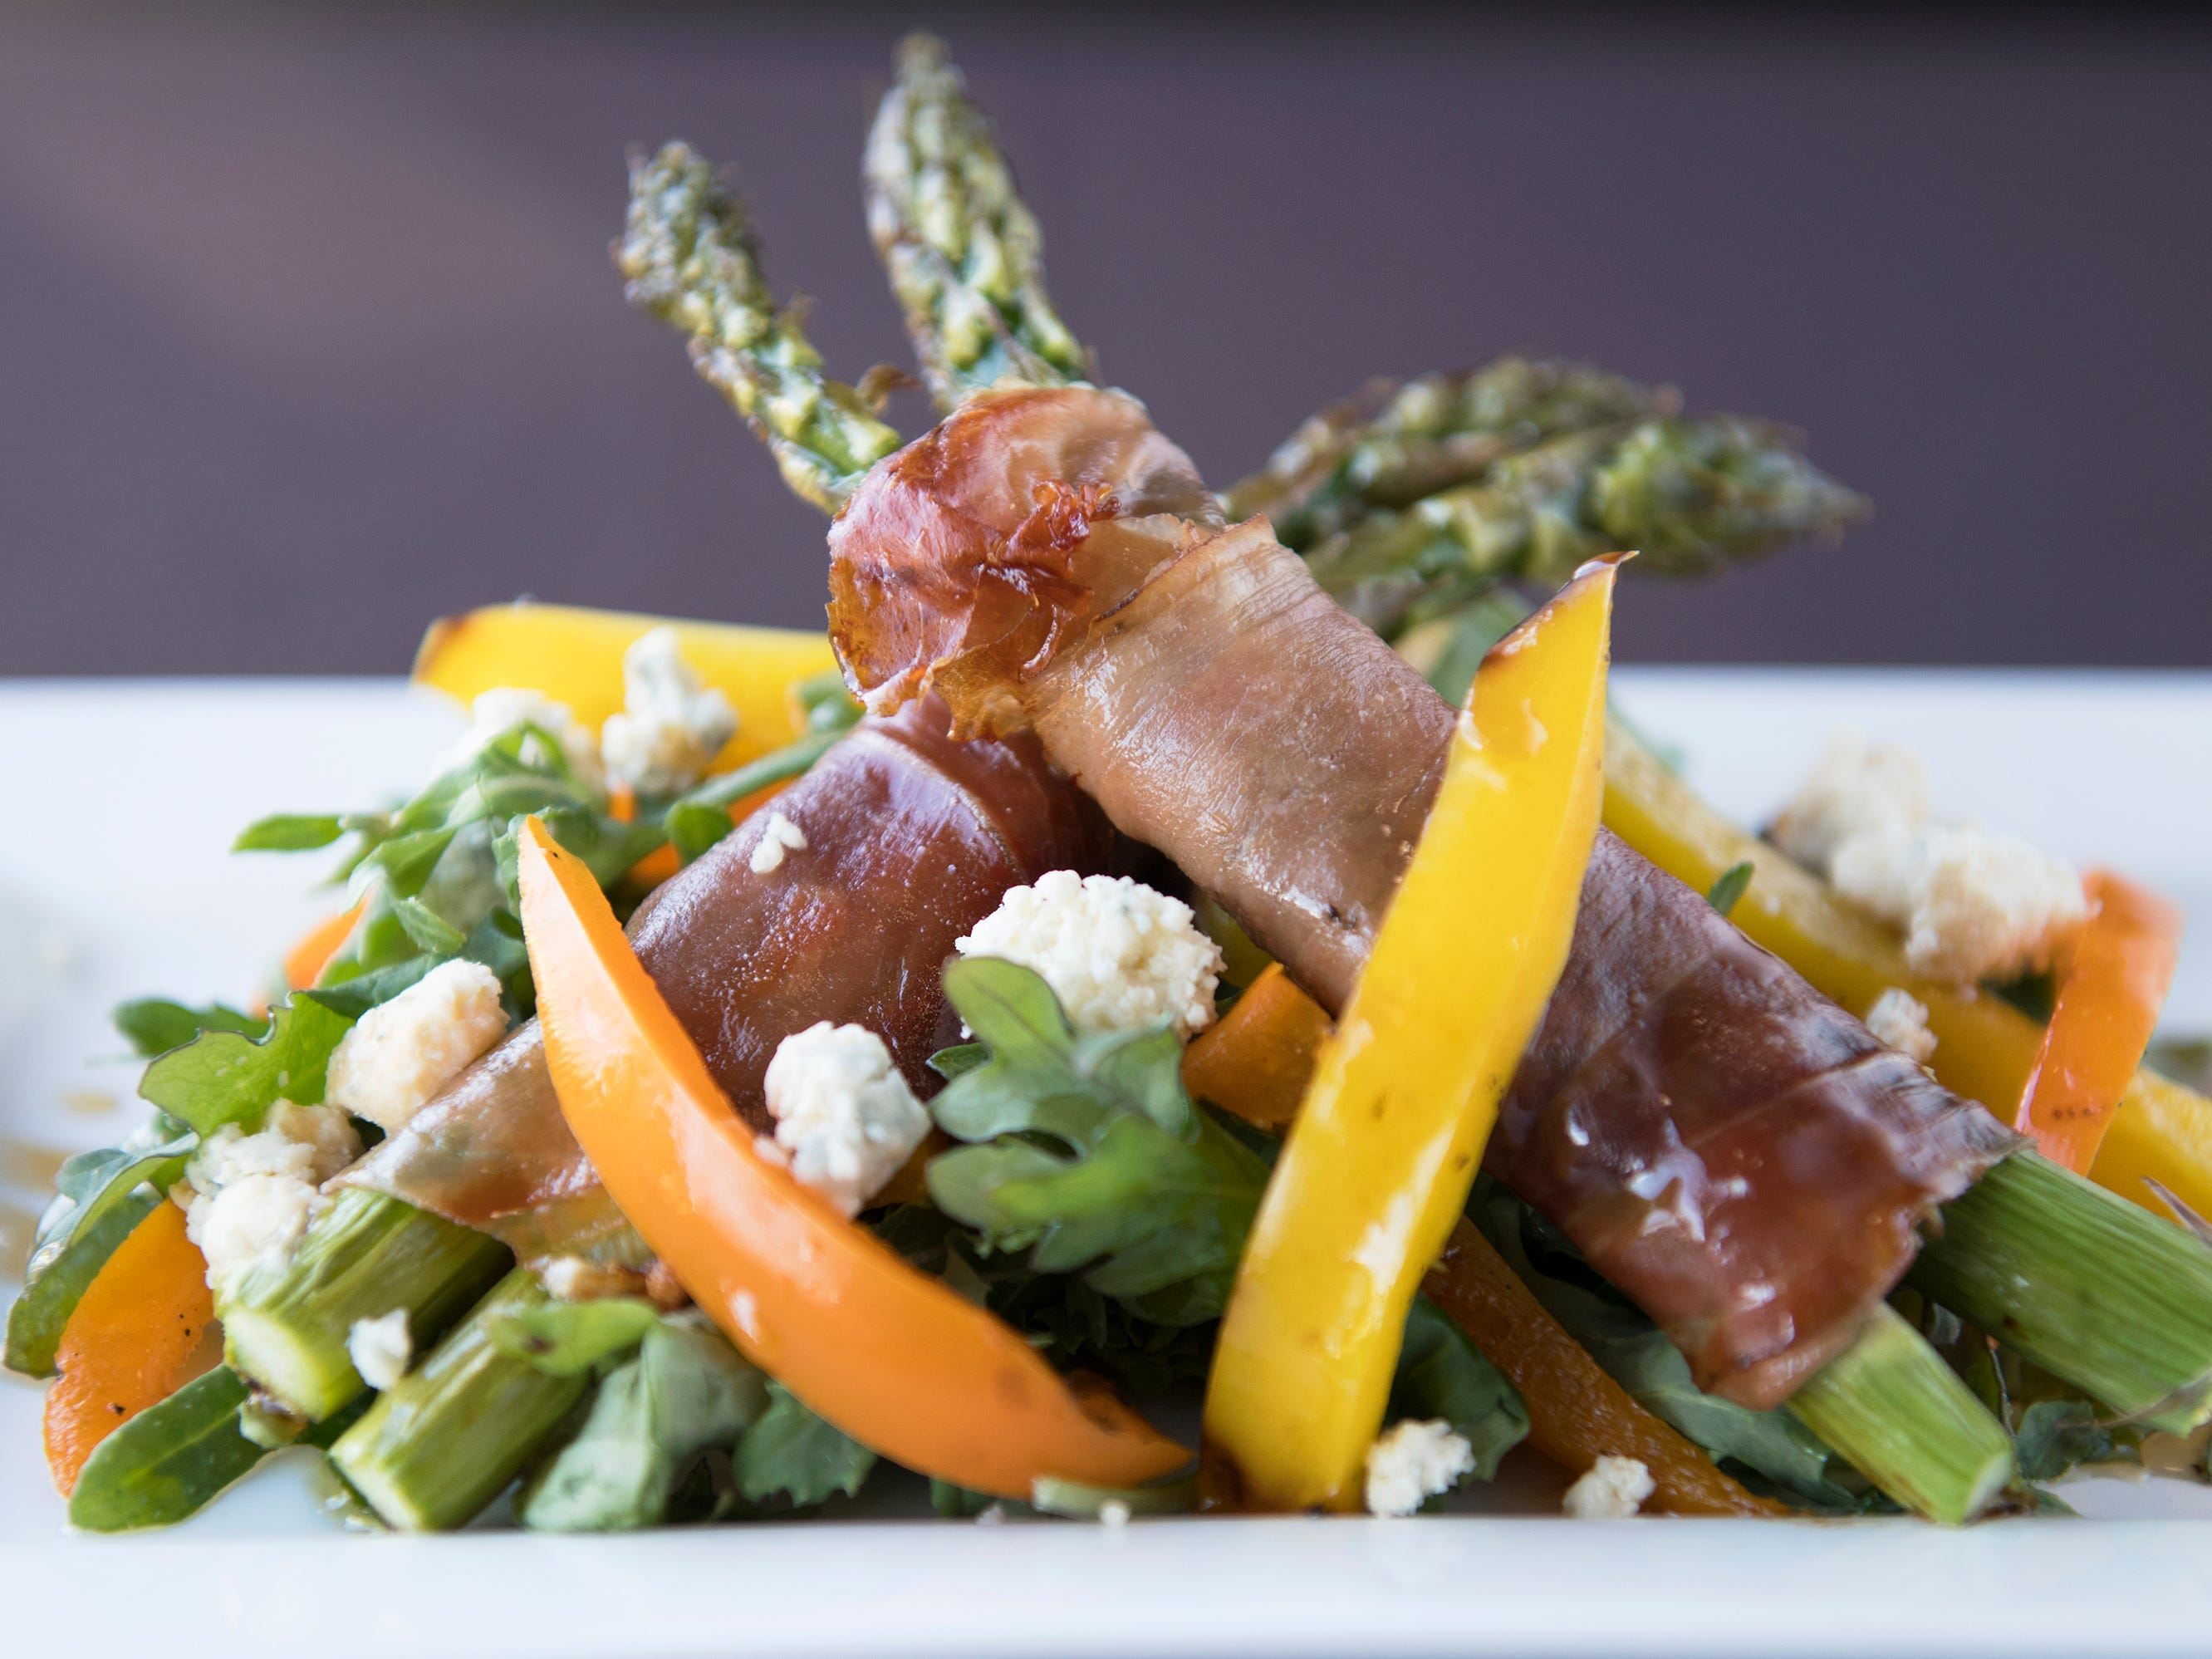 Warm asparagus and specht with smoked bleu cheese, roasted peppers, baby kale, and honey balsamic dressing is a second course option on the SJ Hot Chefs' Spring Restaurant Week menu of Anthony's Creative Italian Cuisine in Haddon Heights.